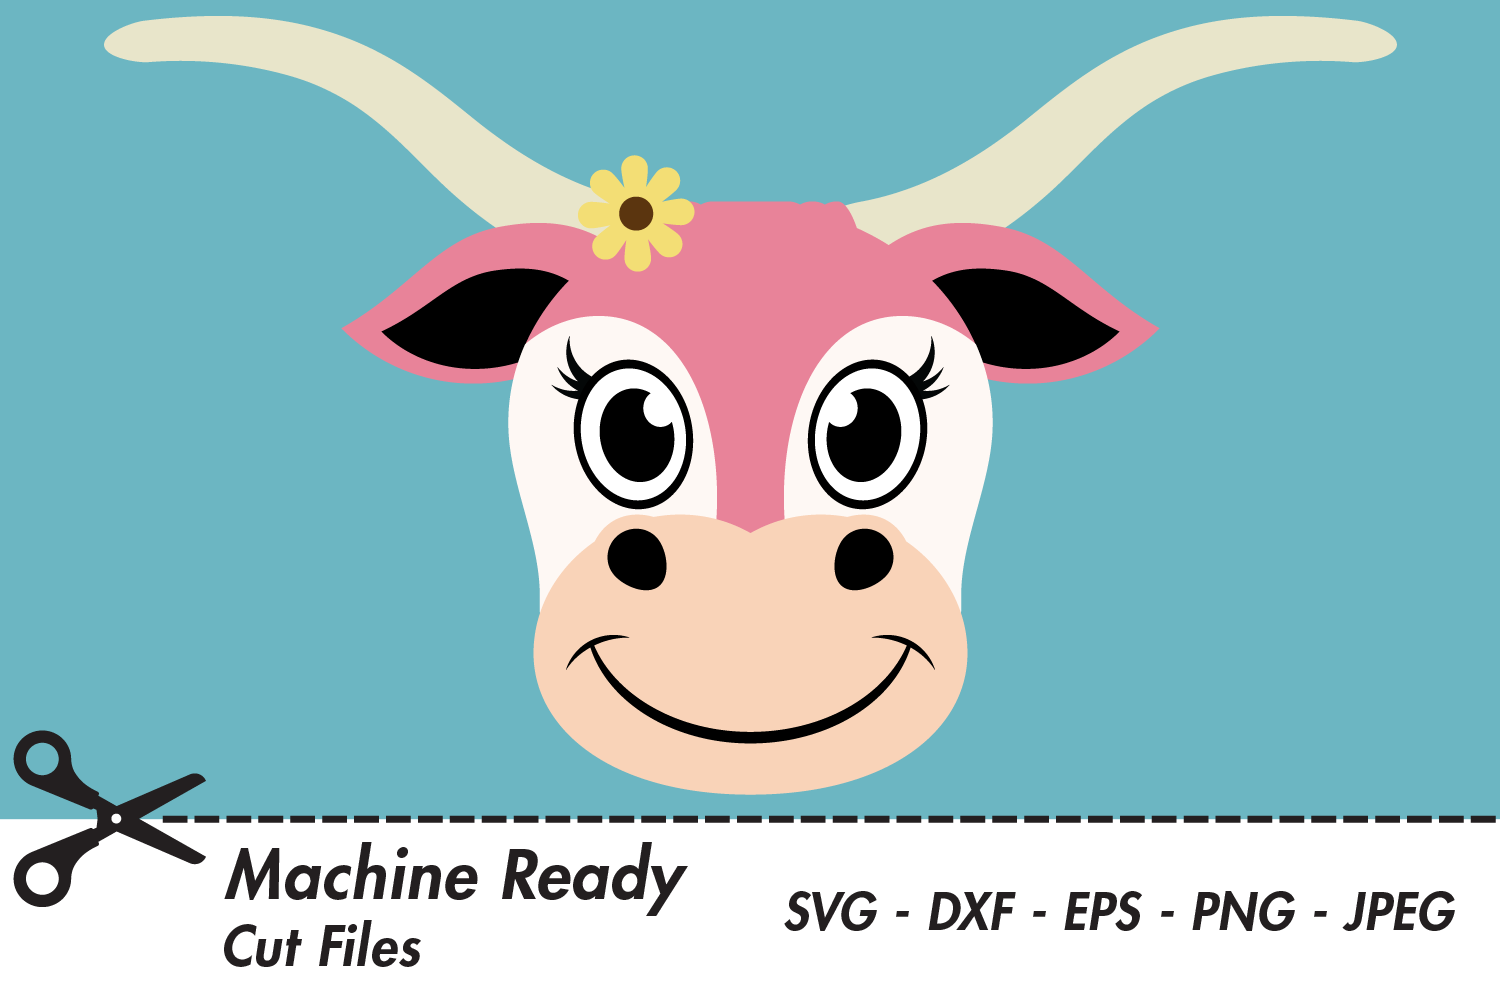 Download Free Wvk01ovmmomgym for Cricut Explore, Silhouette and other cutting machines.